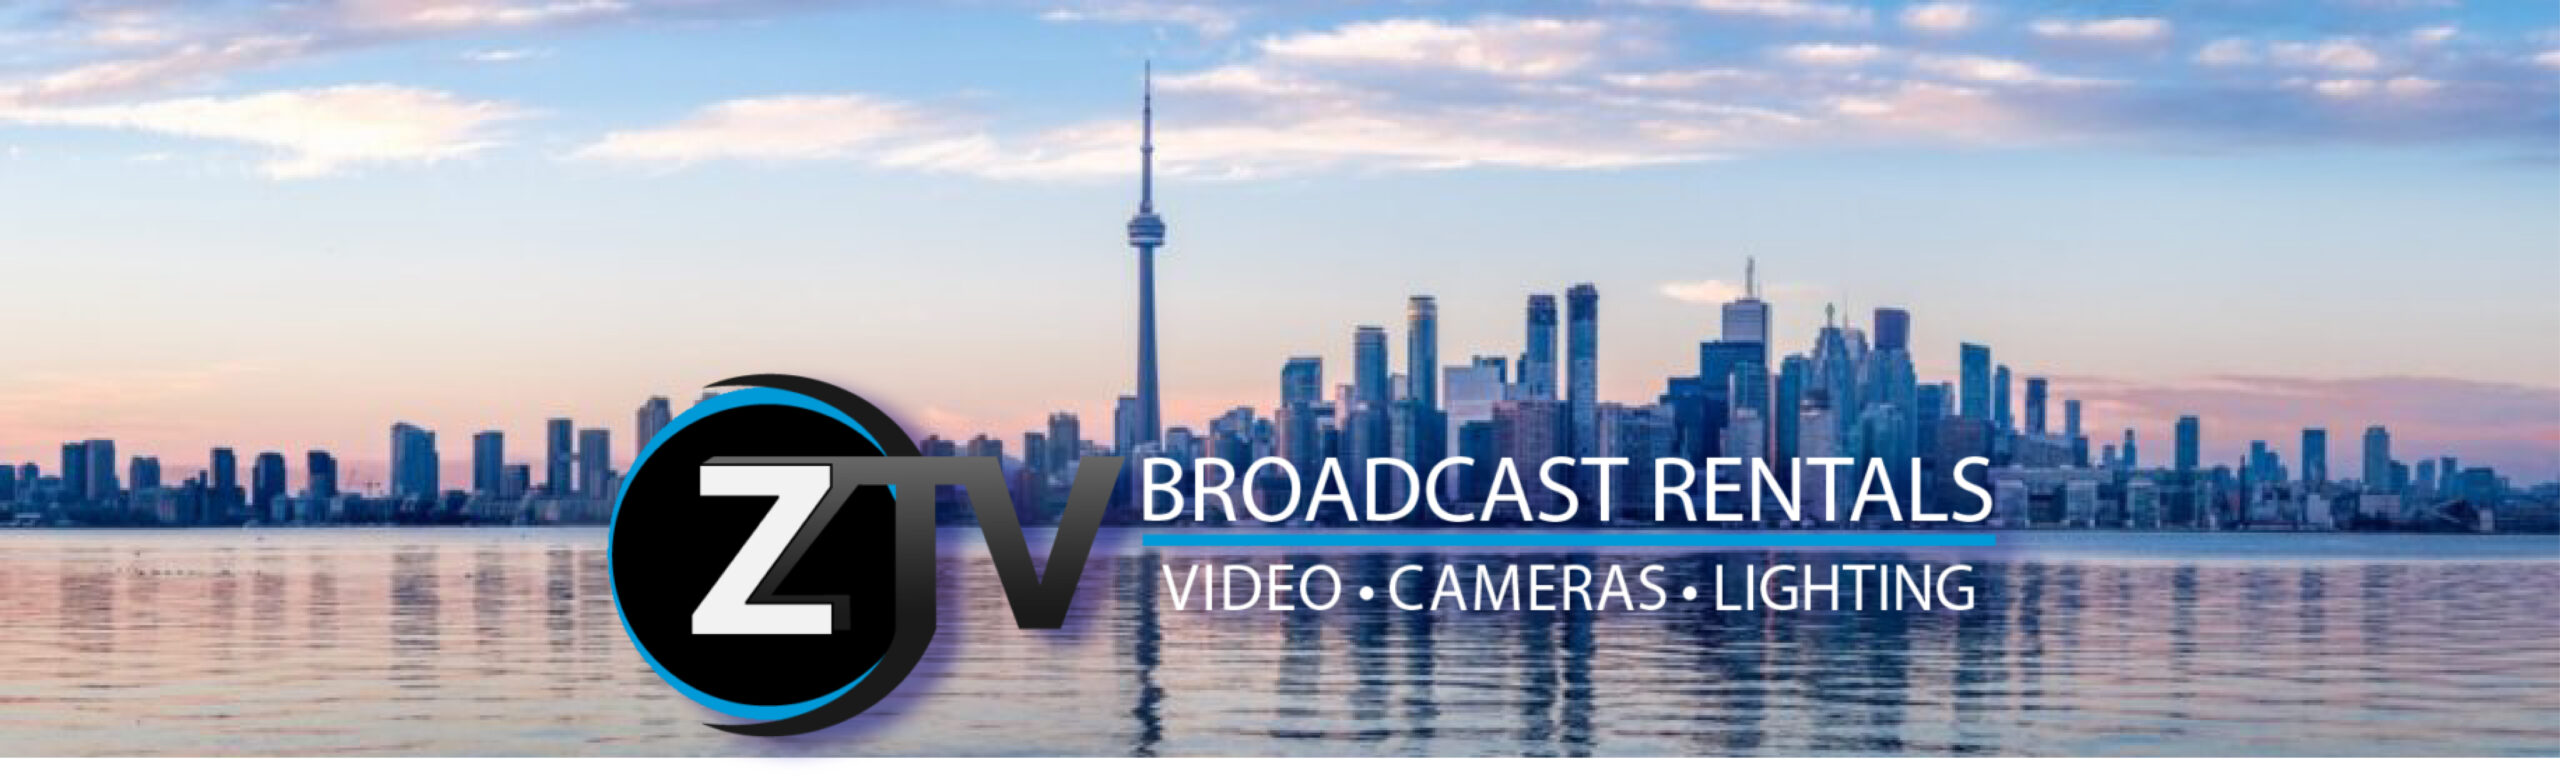 ZTV Broadcast Services